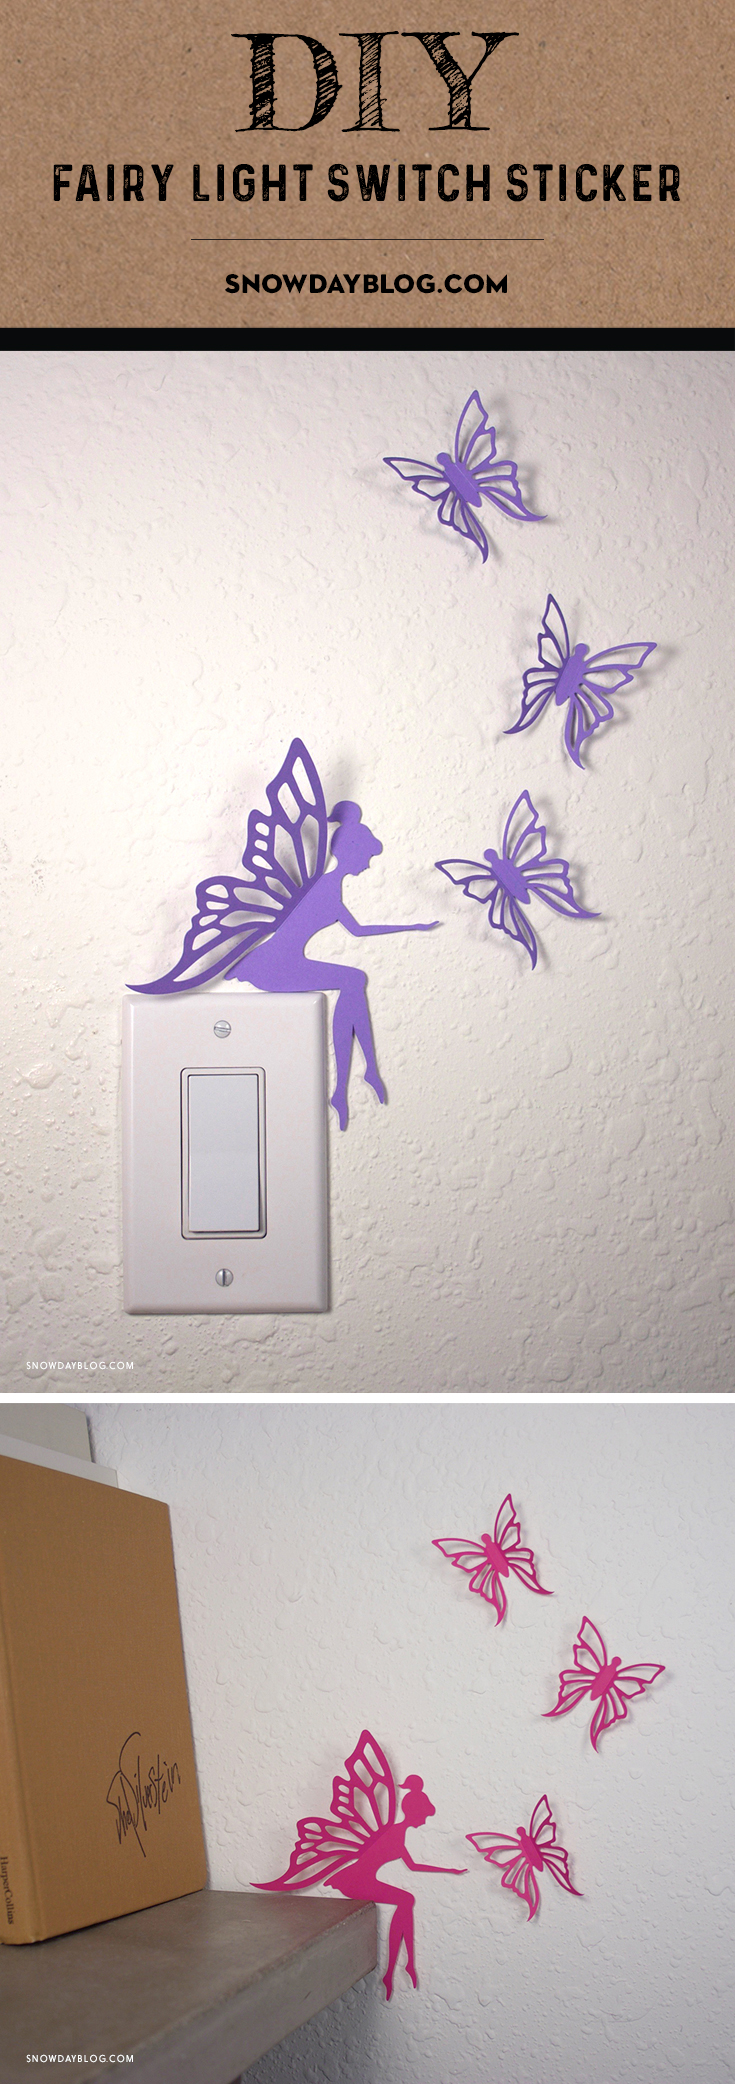 LightSwitch Fairy Pinterest Purple